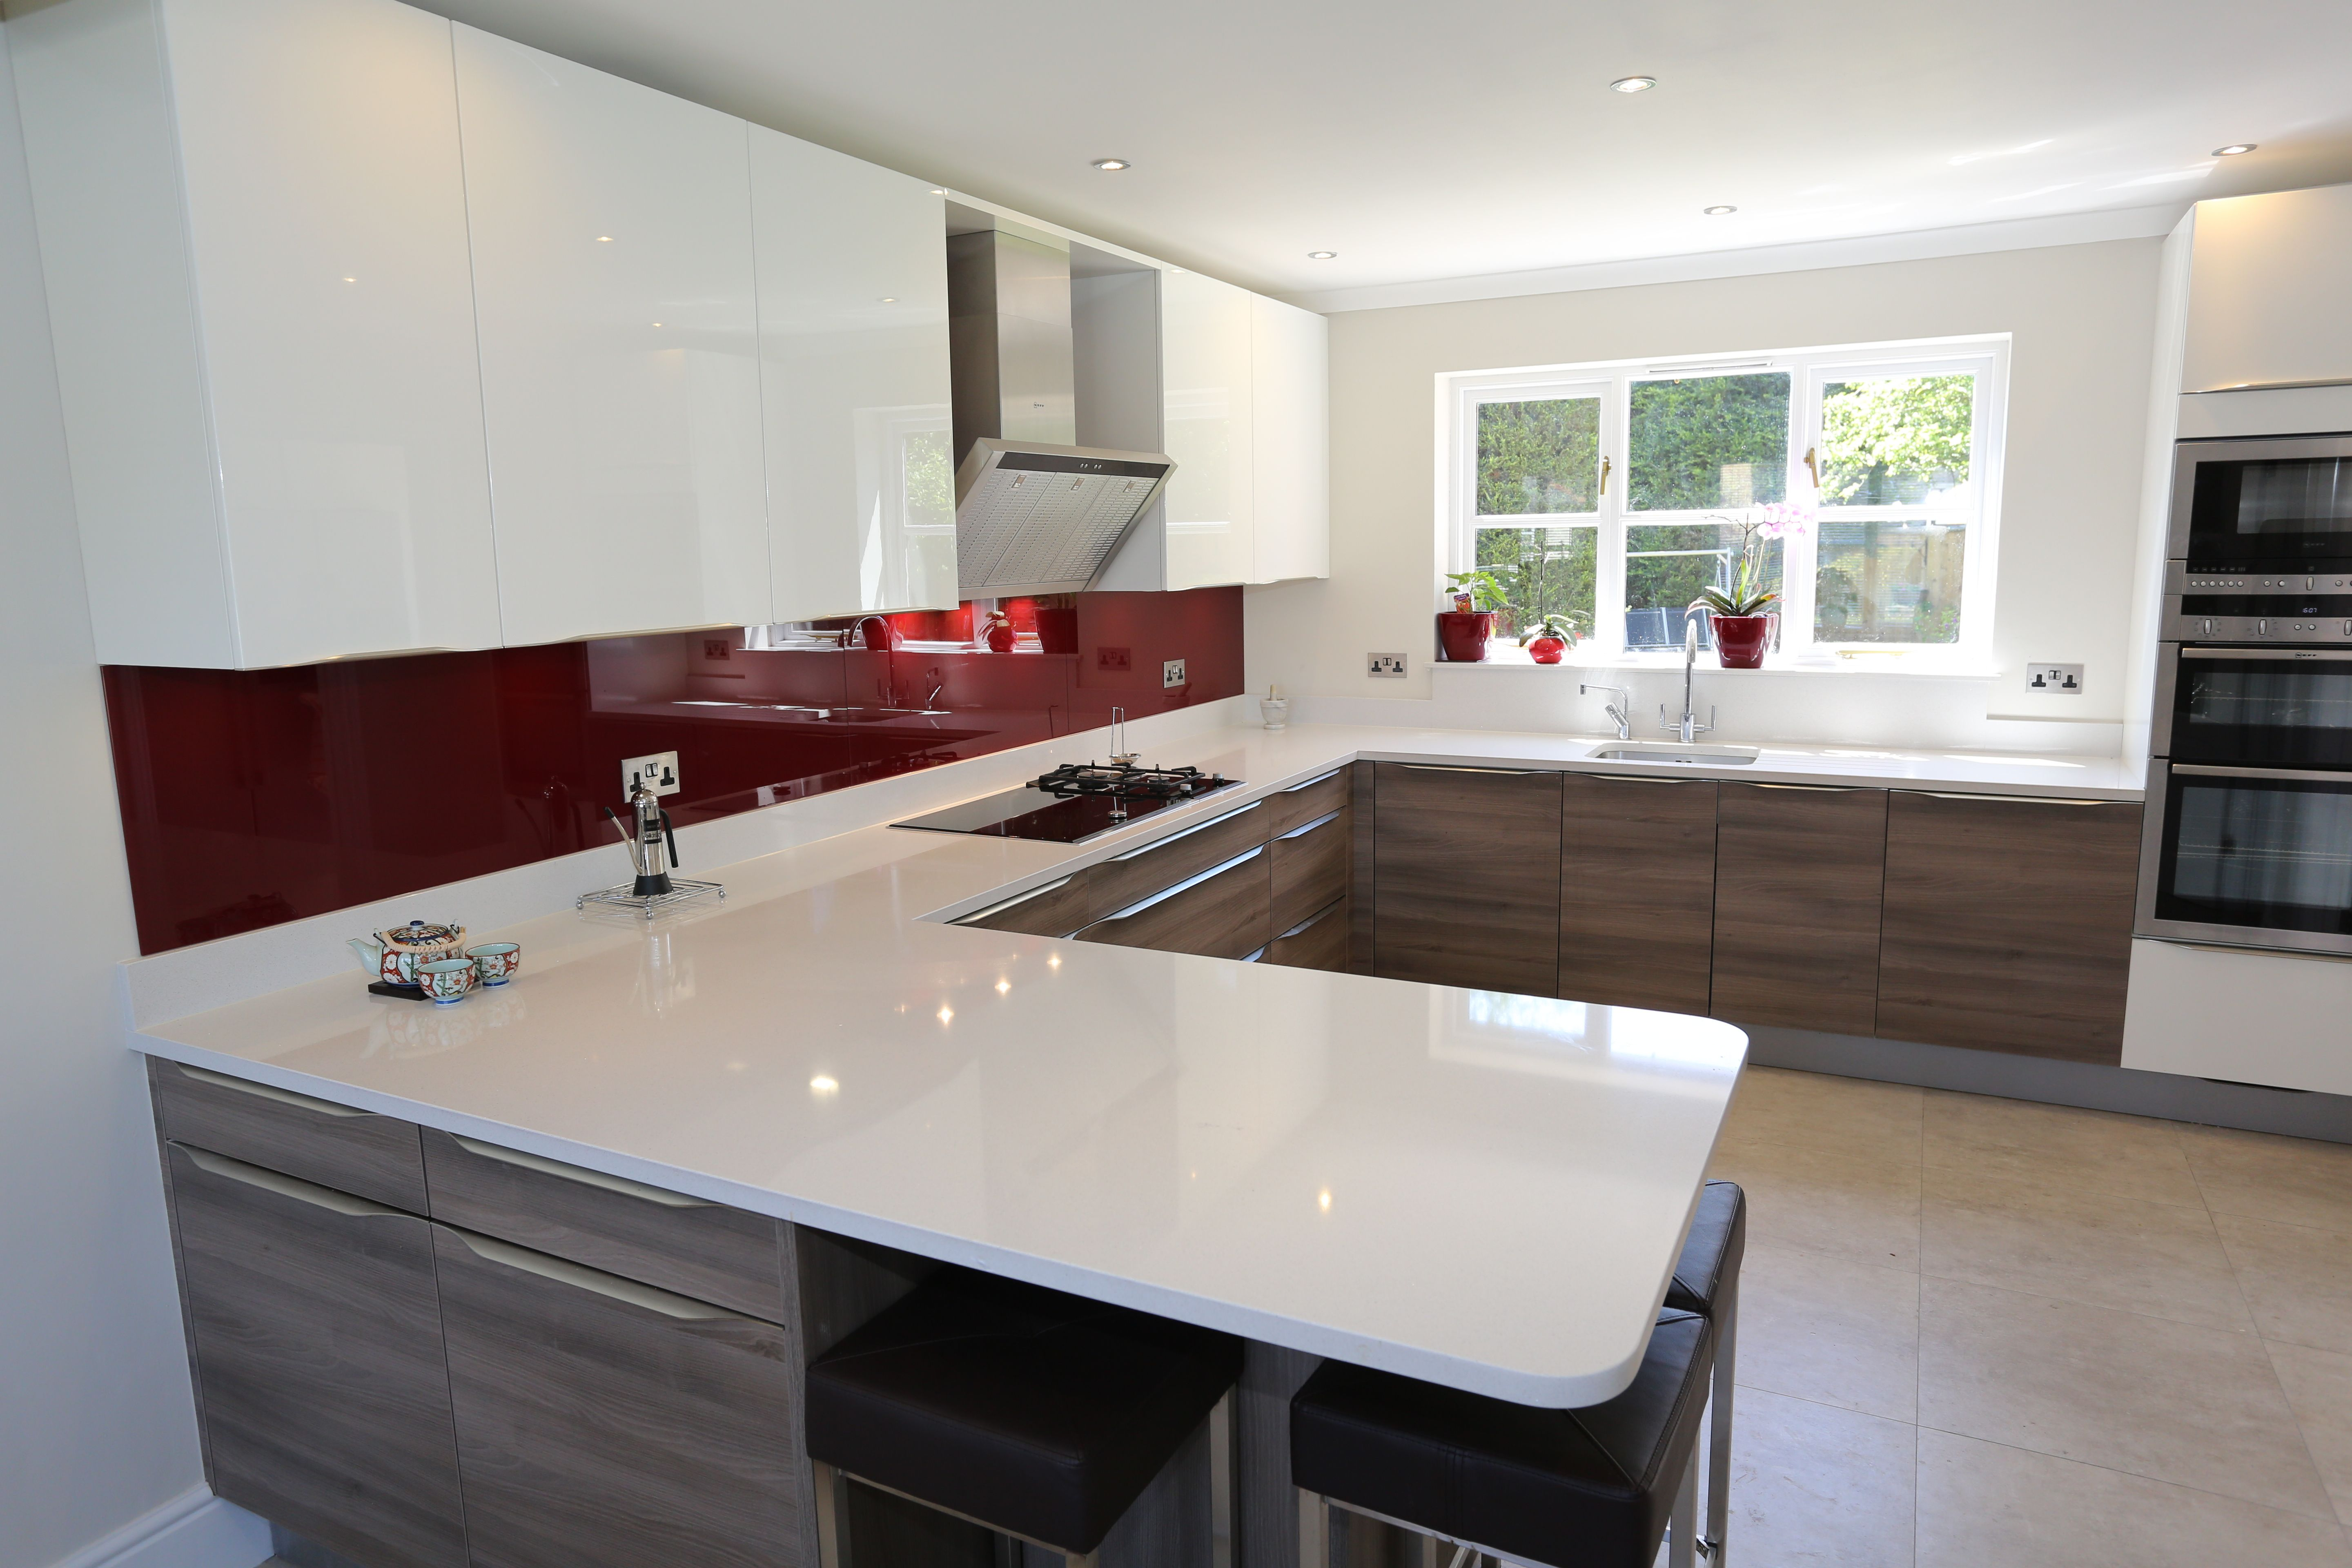 Shiny White and grey acacia wood kitchen by Hacker at The Kitchen ...